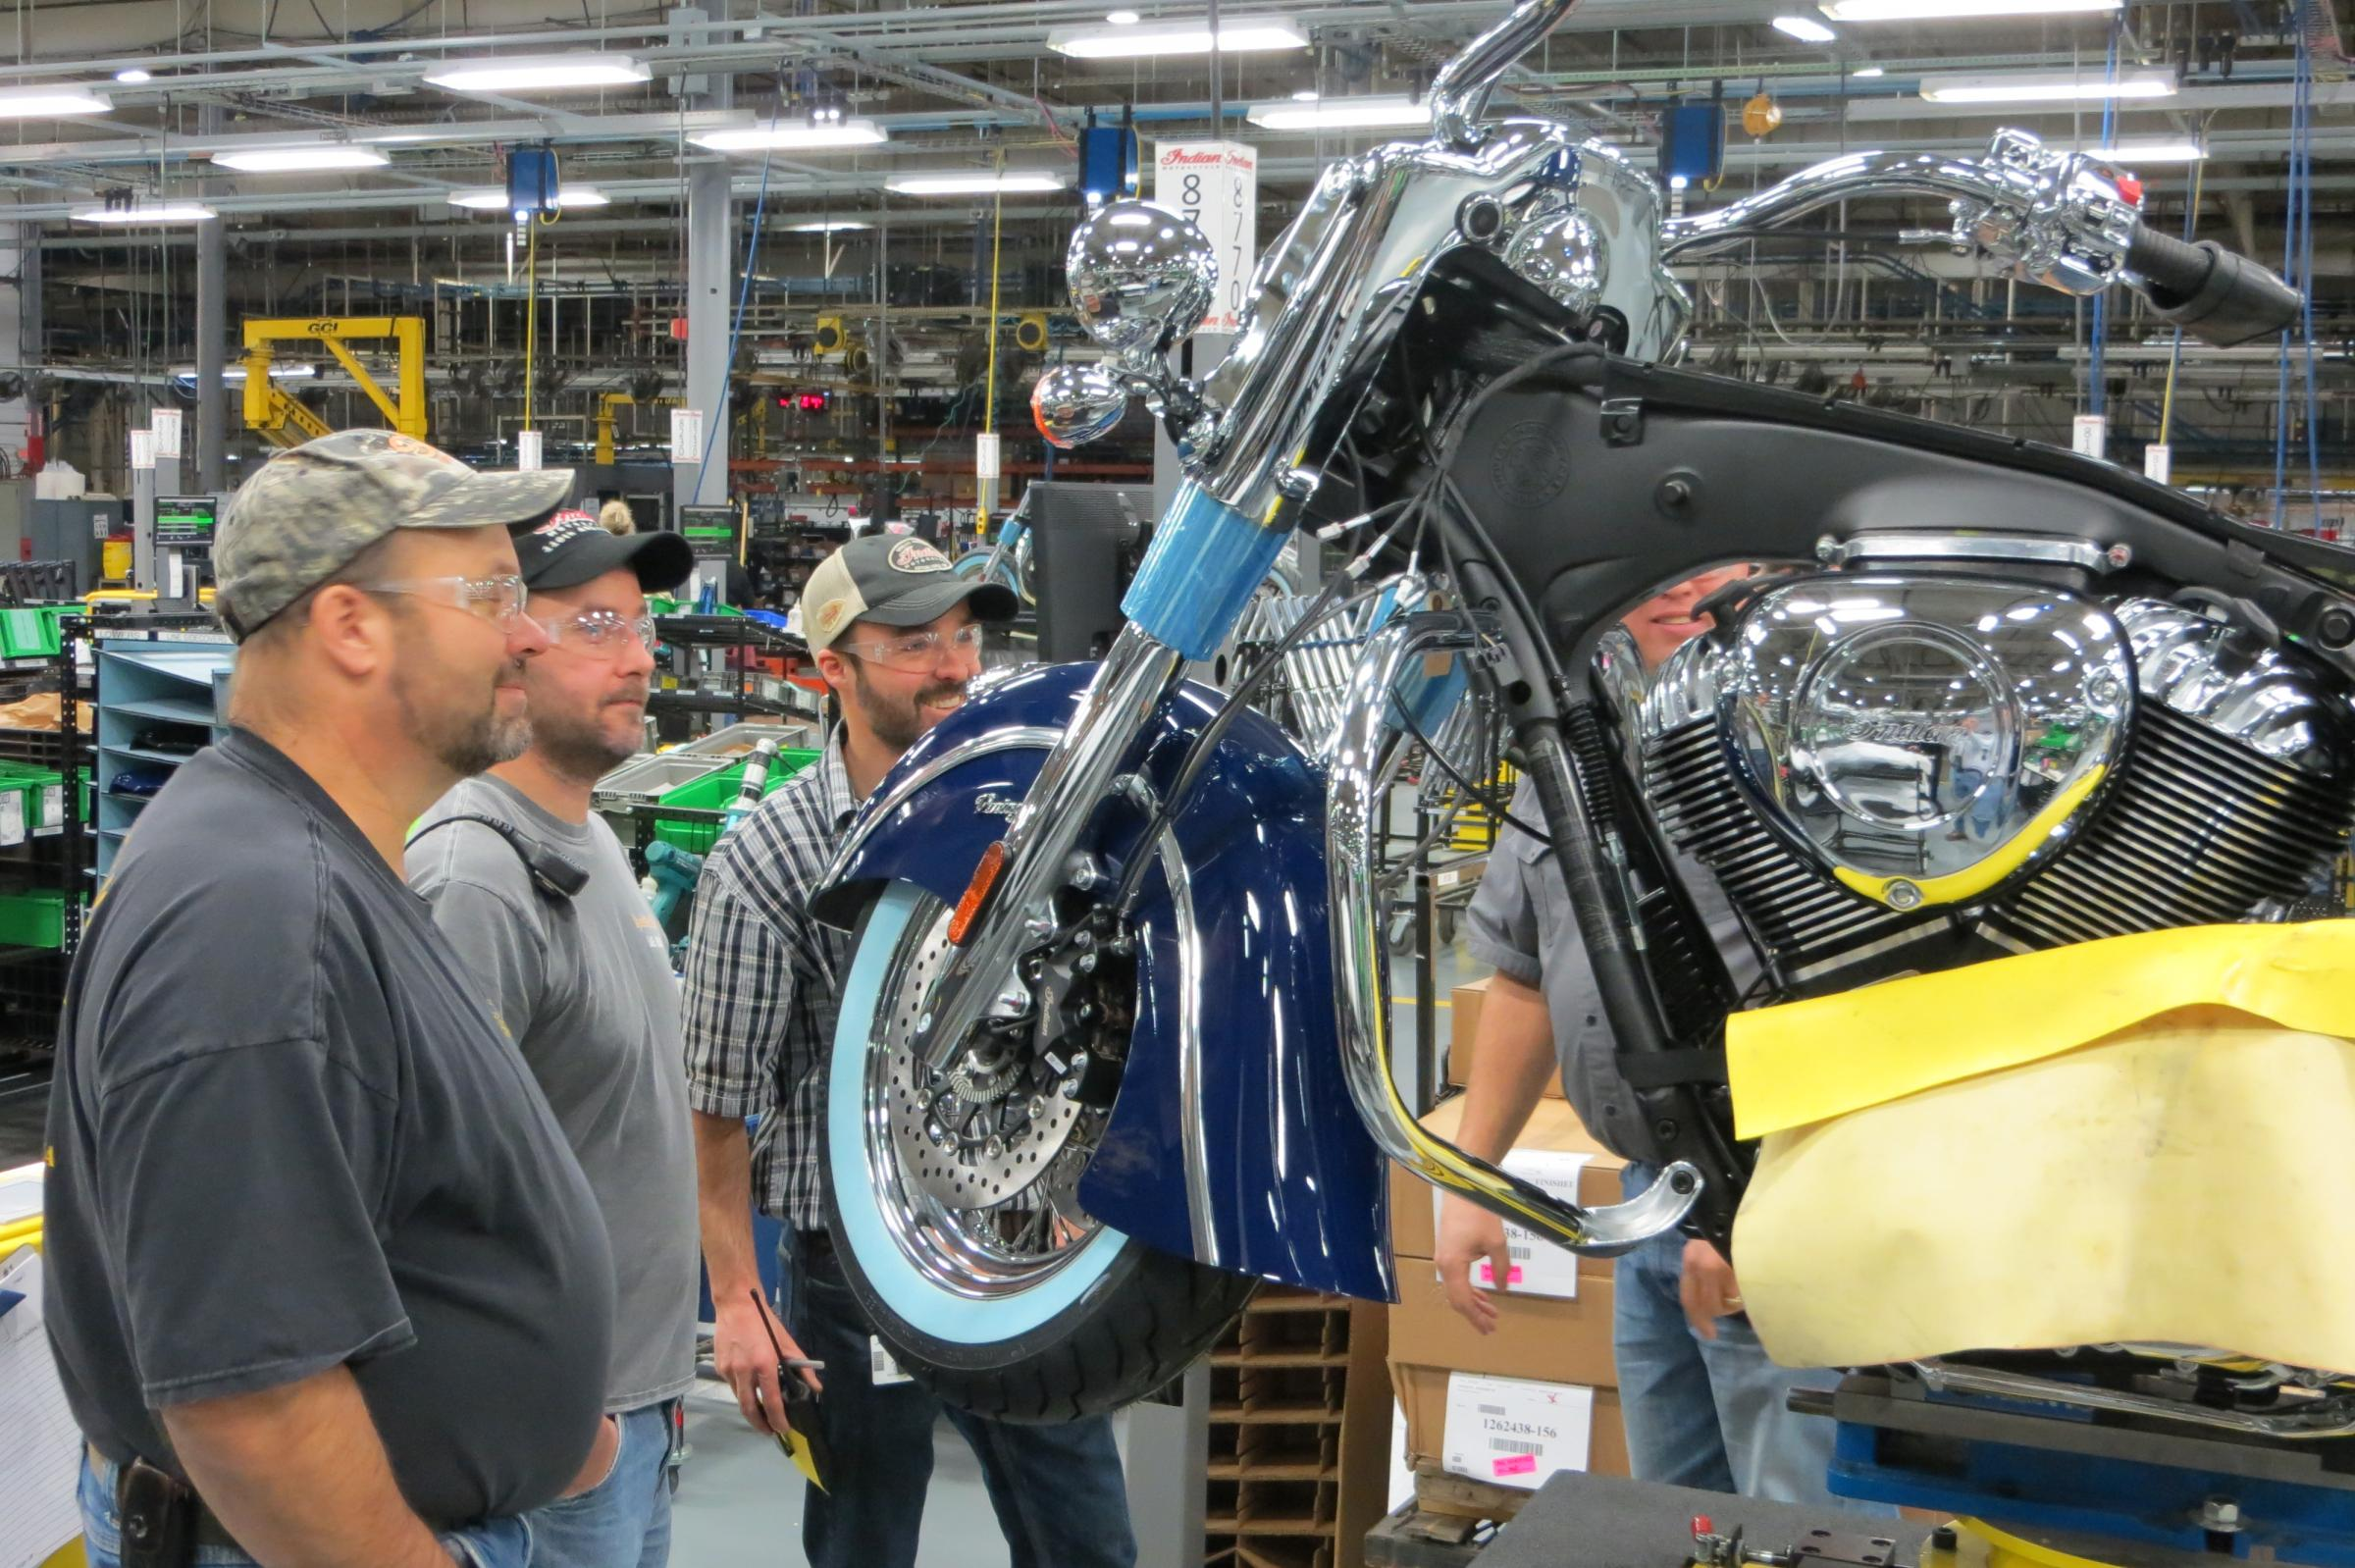 Motorcycle Sector Reports: Latest Market Research, Statistics & Trends